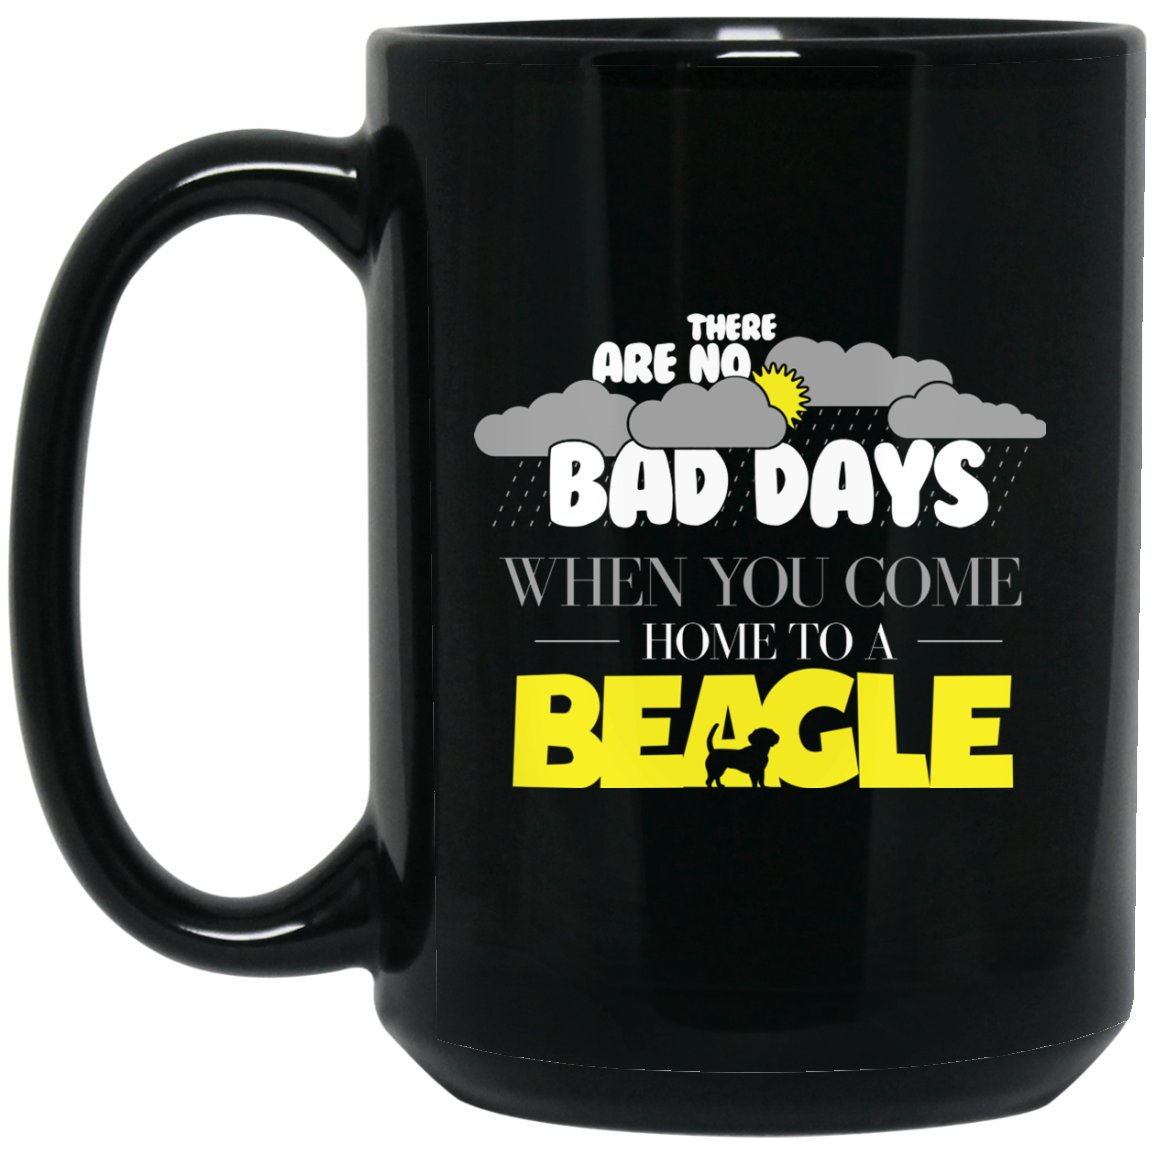 Cool Beagle - There Are No Bad Days When You come Home To A Beagle Large Black Mug